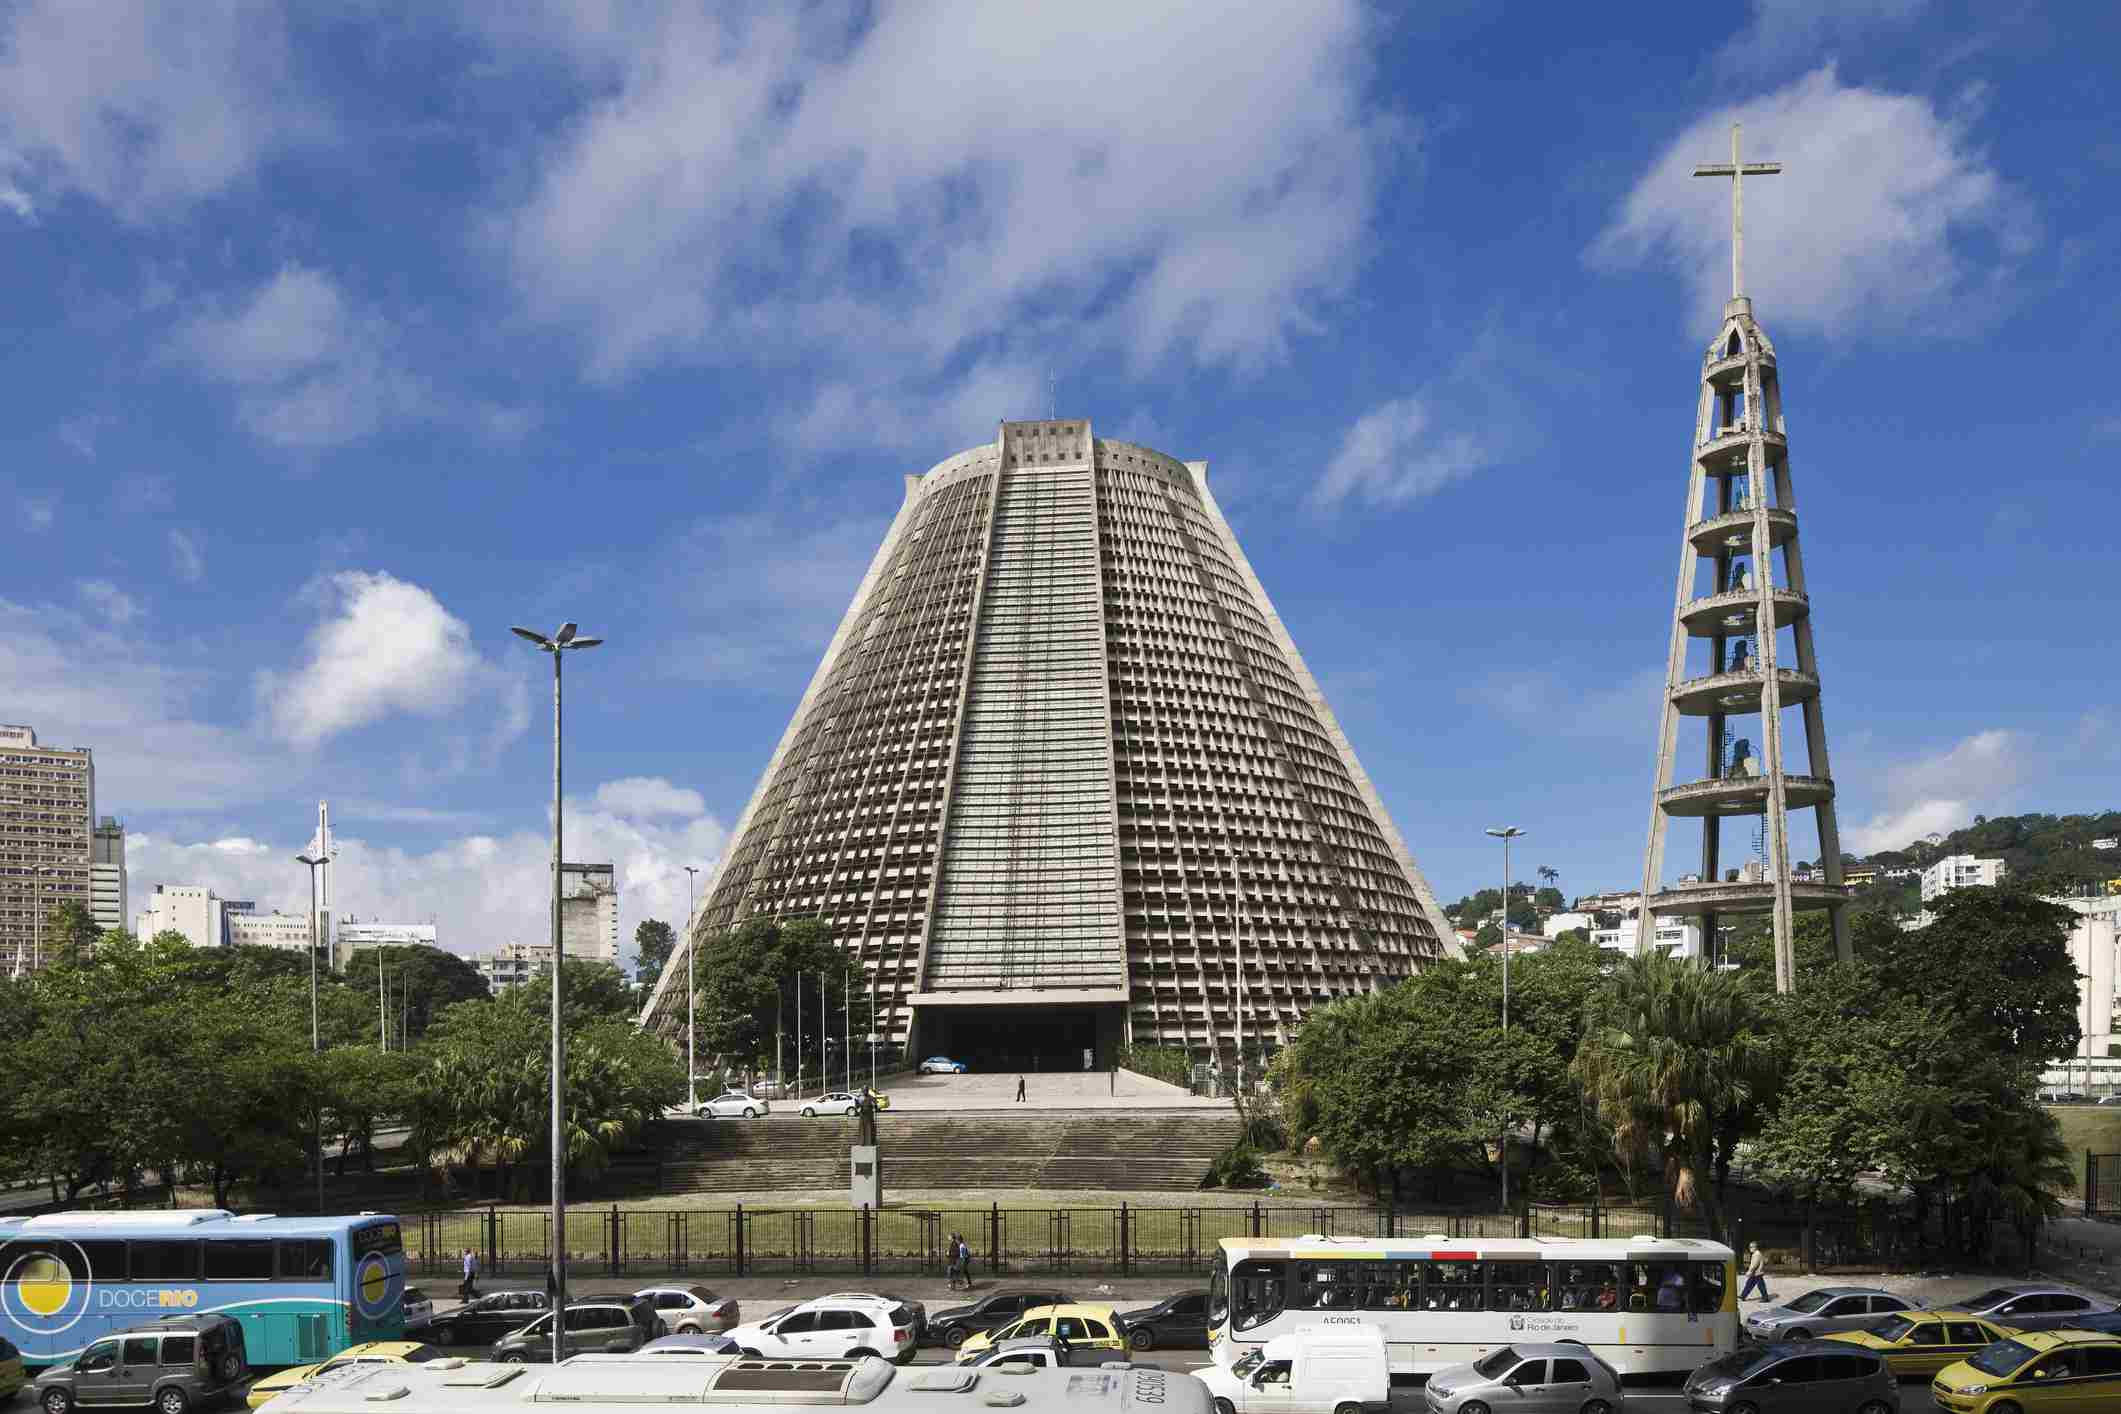 Save to Board Centro, the Catedral (cathedral) Metropolitana